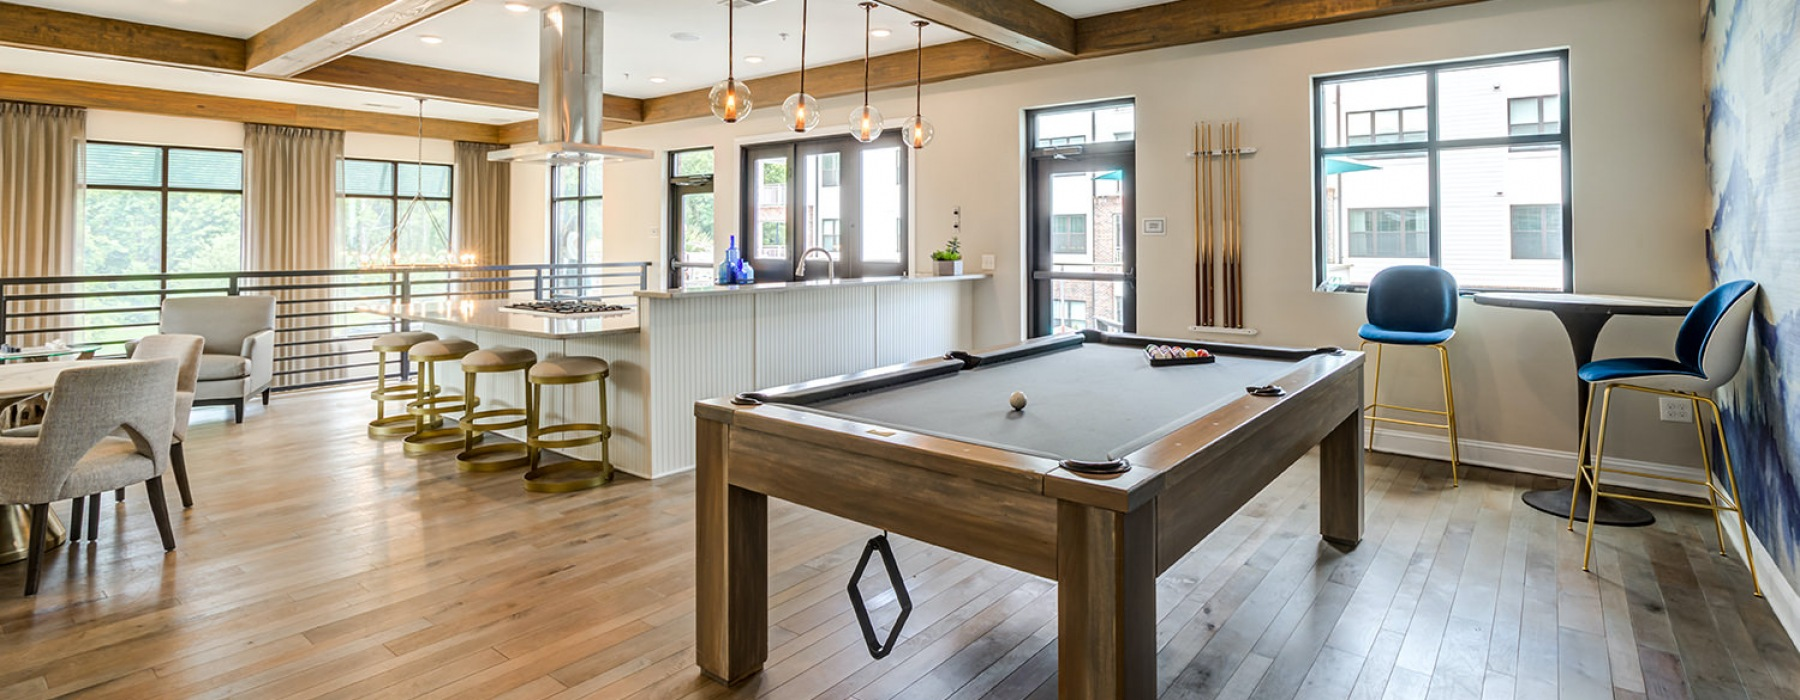 Loft, clubhouse space with lots of windows, pool table, and community kitchen